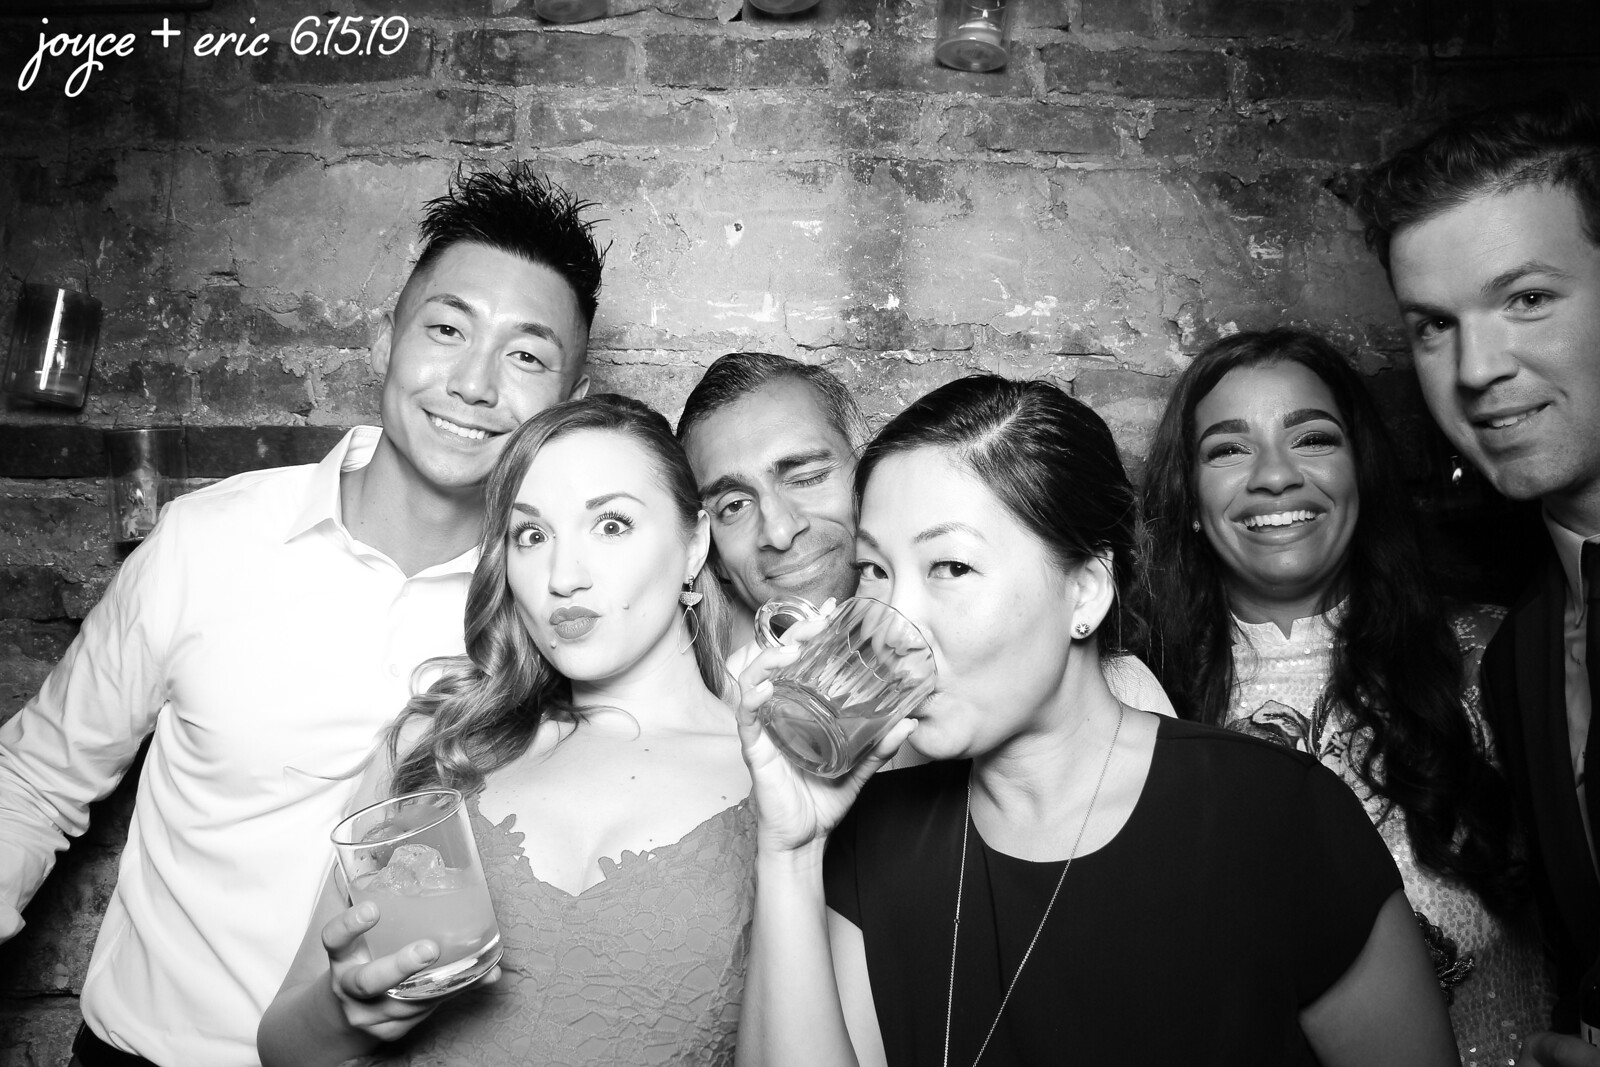 Chicago_Vintage_Wedding_Photobooth_New_Leaf_12.jpg